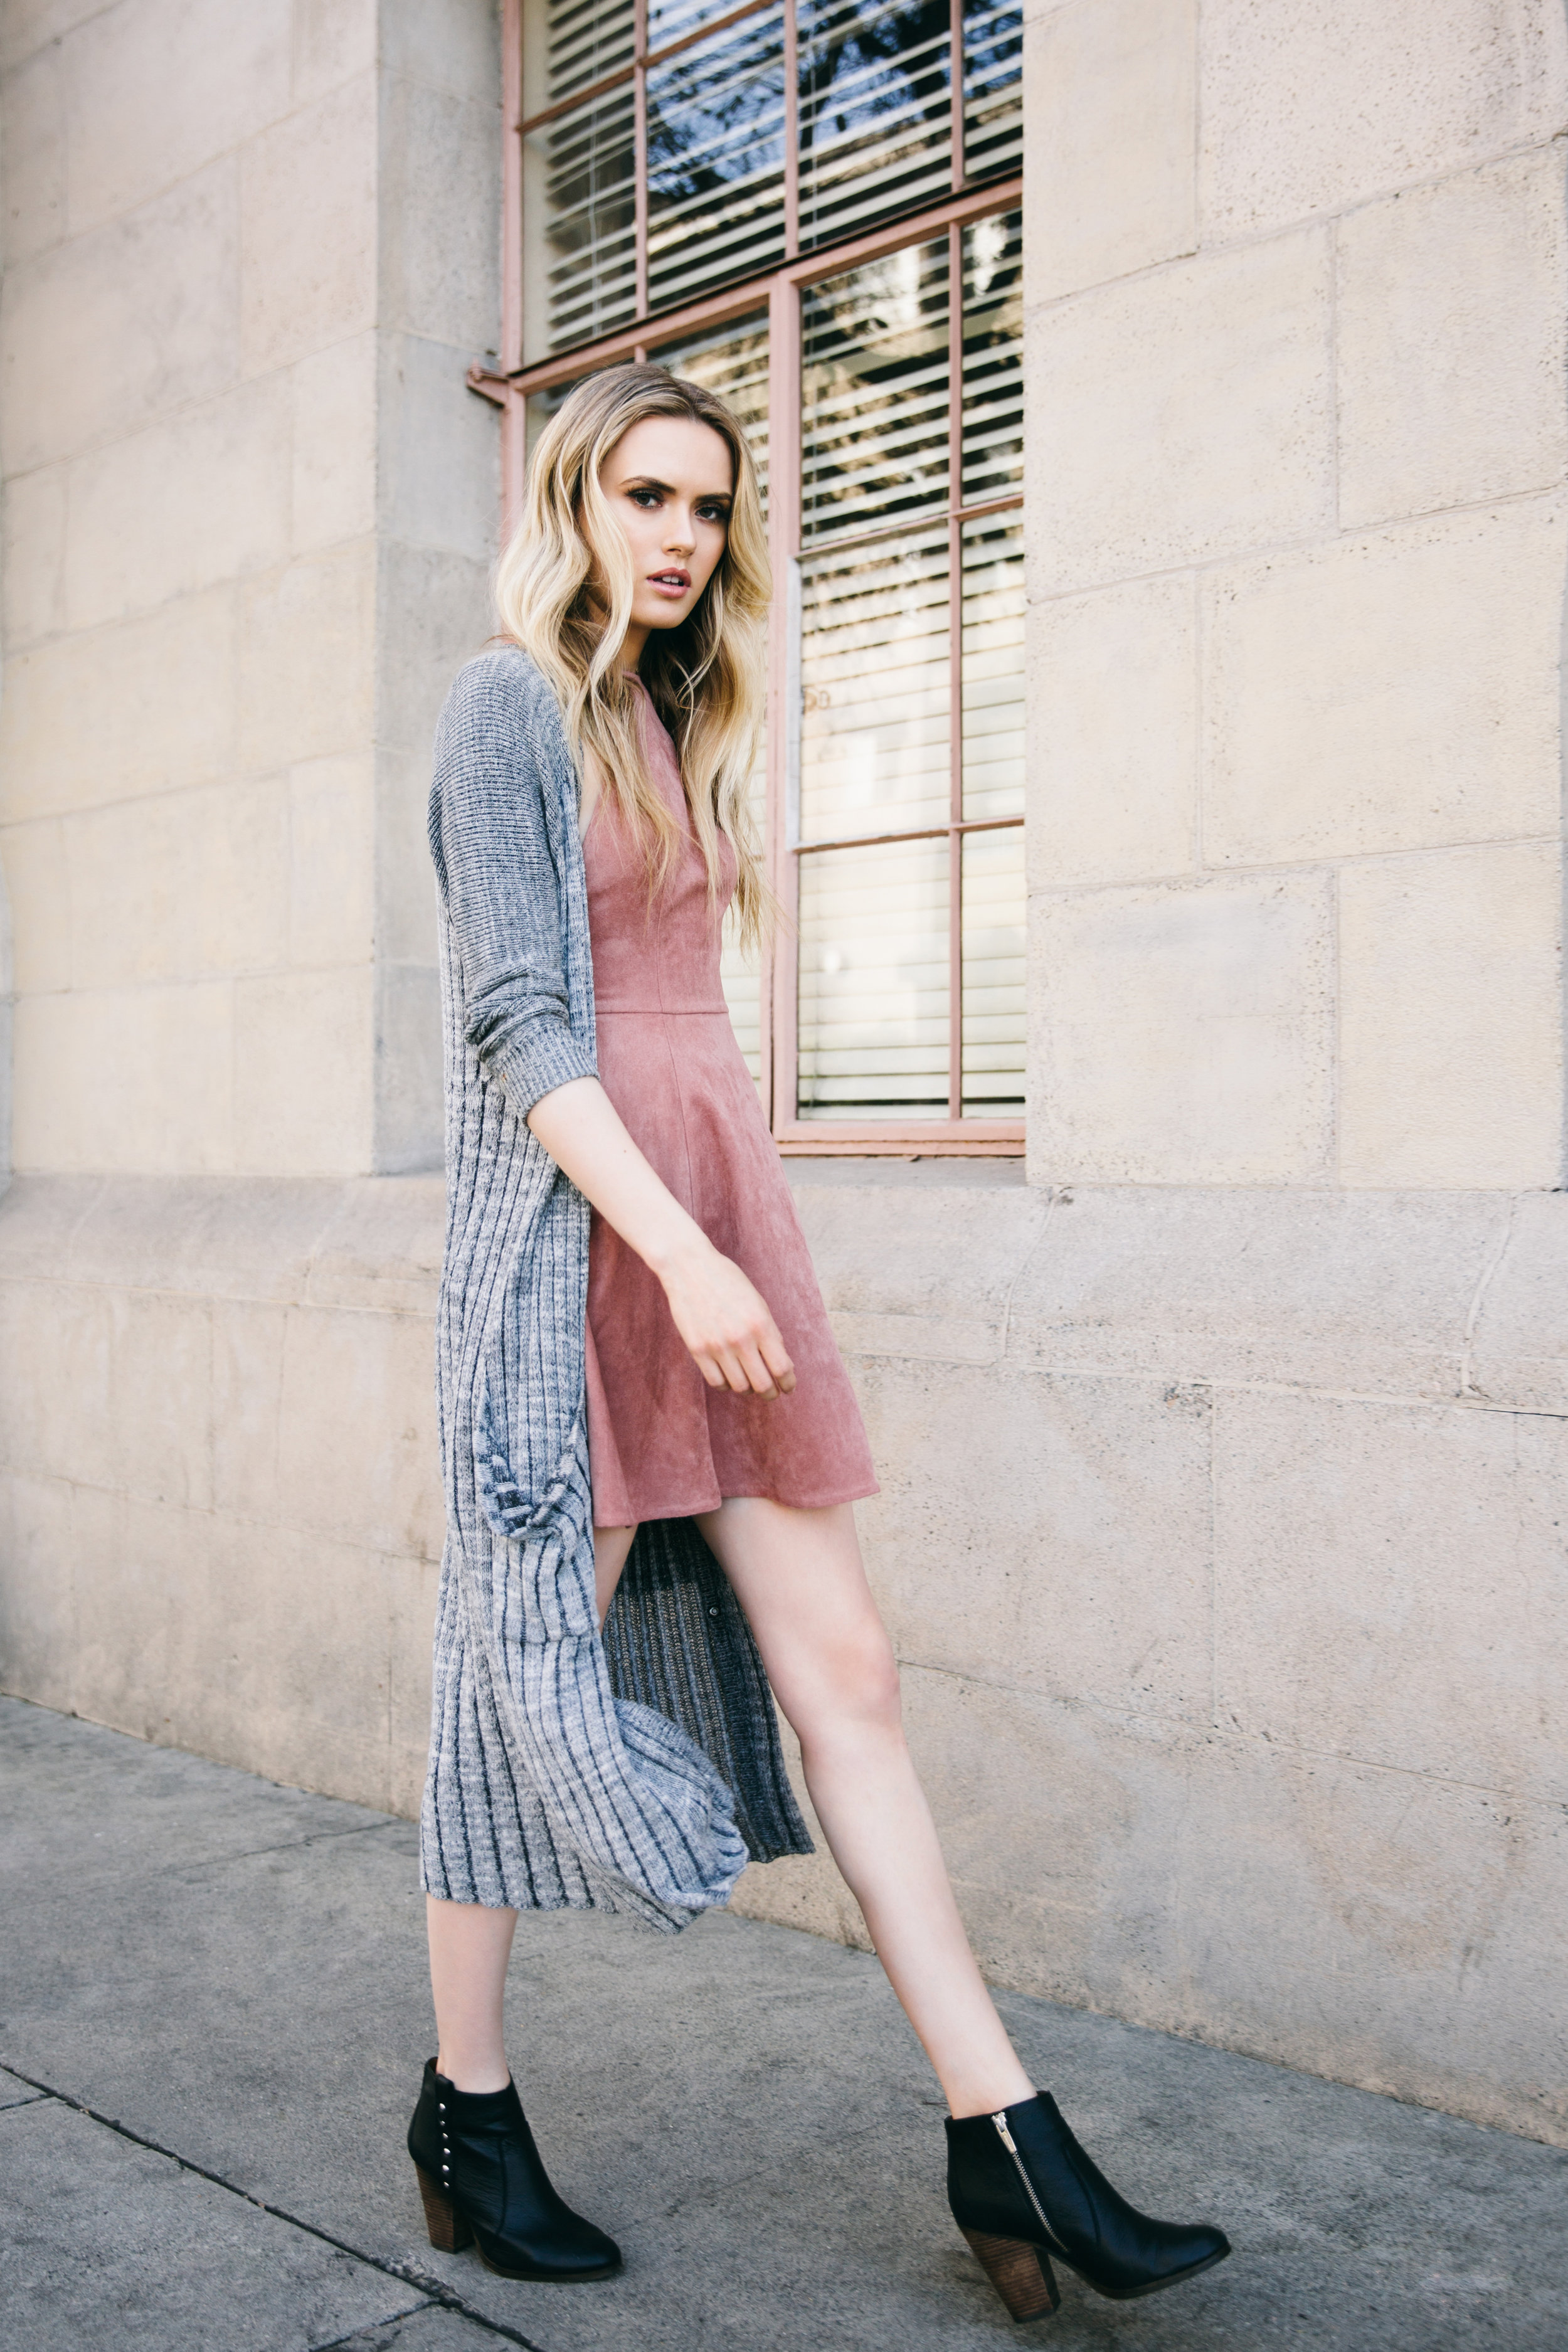 Sweater: Free People  Dress: The Coverii  Shoes: Coach